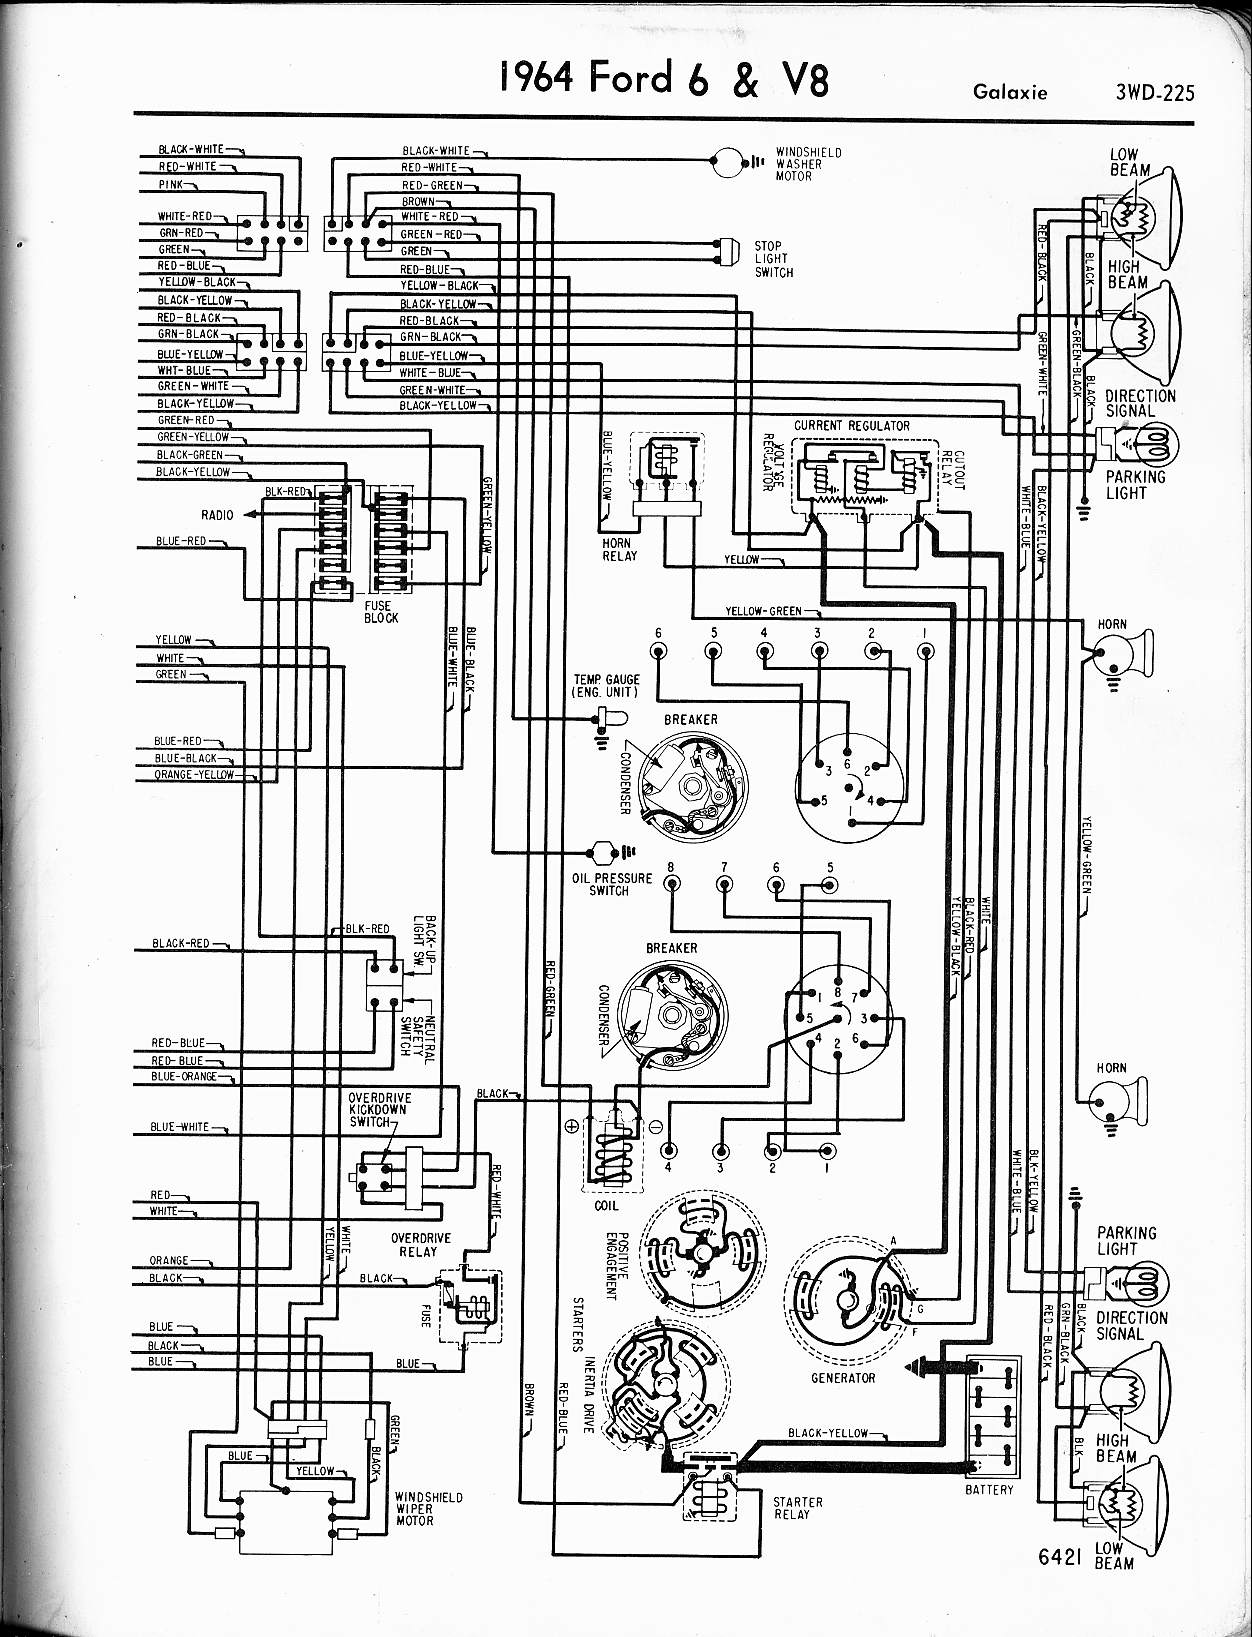 MWire5765 225 57 65 ford wiring diagrams Ford E 350 Wiring Diagrams at n-0.co